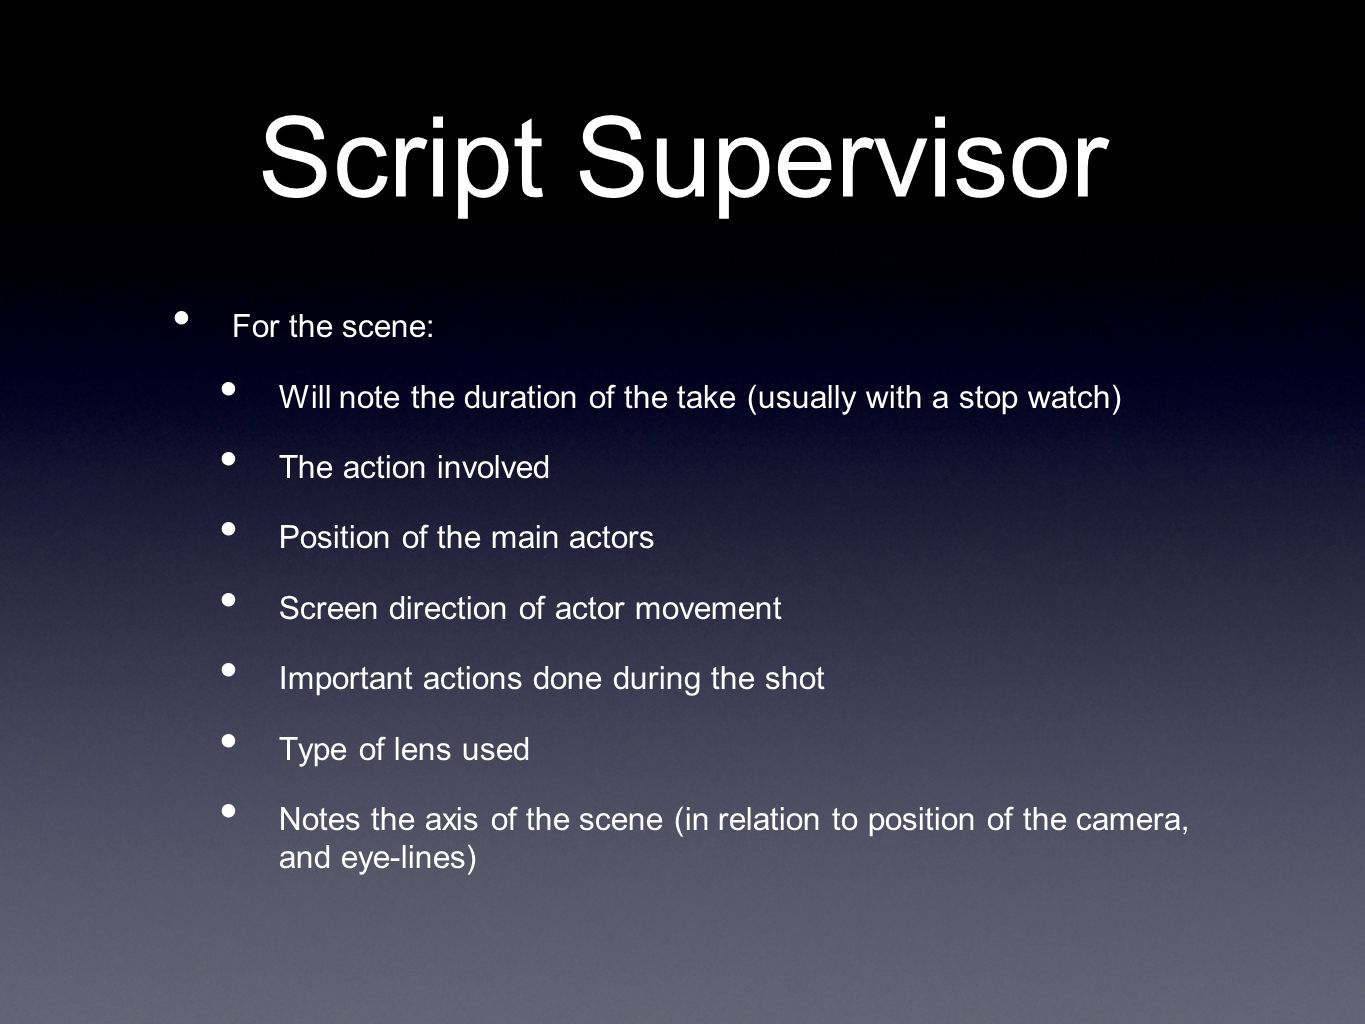 Script Supervisor For the scene: Will note the duration of the take (usually with a stop watch) The action involved Position of the main actors Screen direction of actor movement Important actions done during the shot Type of lens used Notes the axis of the scene (in relation to position of the camera, and eye-lines)